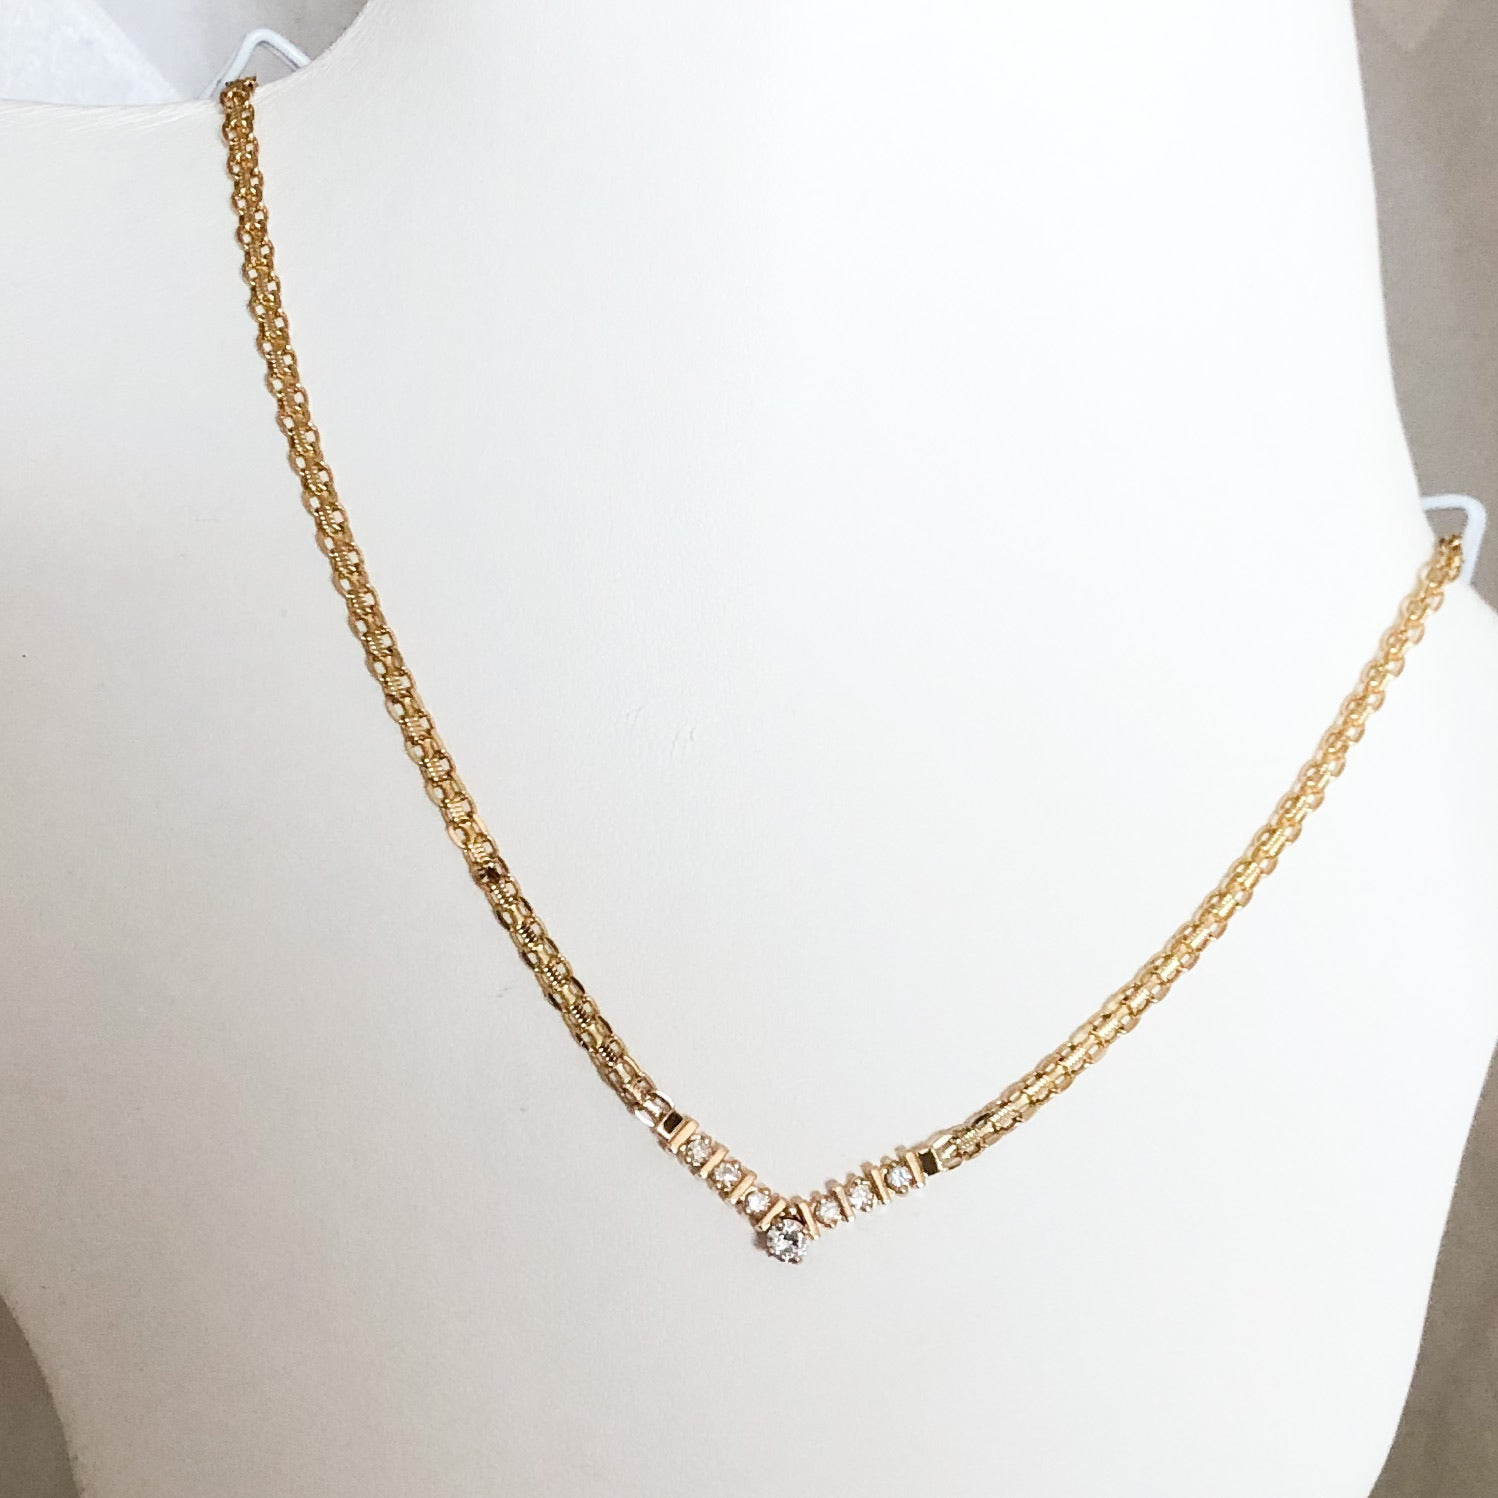 14K Yellow Gold Necklace with Seven Diamonds in a V Shape    CN0051